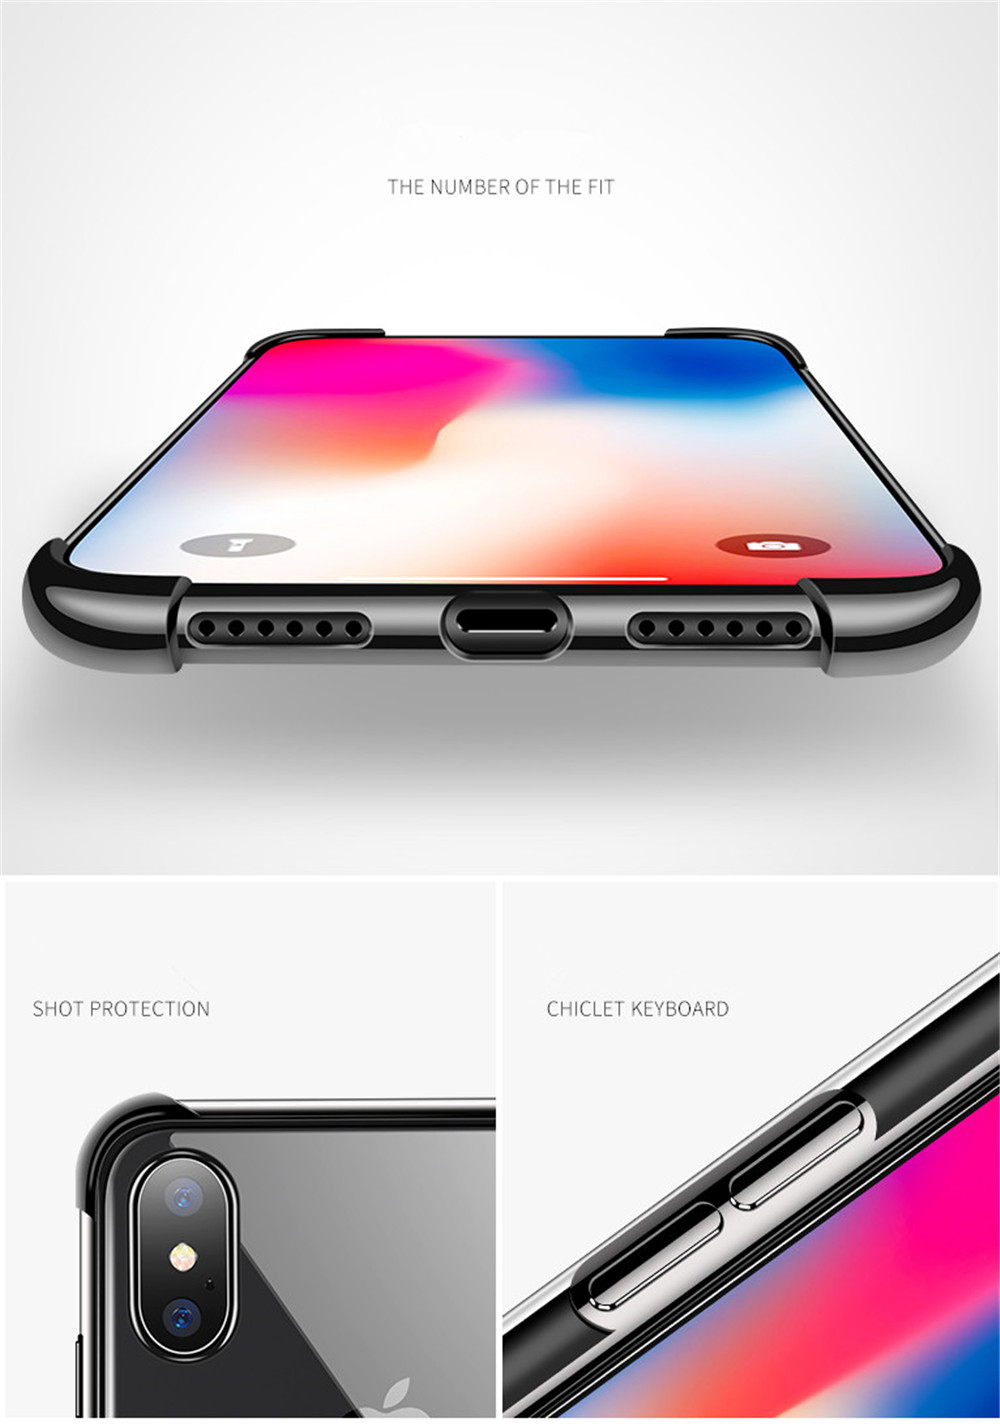 Transparent Bumper Airbag Case For iPhone 11 Pro X XR XS Max 7 8 Plus 6 6s Soft TPU 360 Degree Protection Anti-Drop Anti-Scratch Screen Clear Case